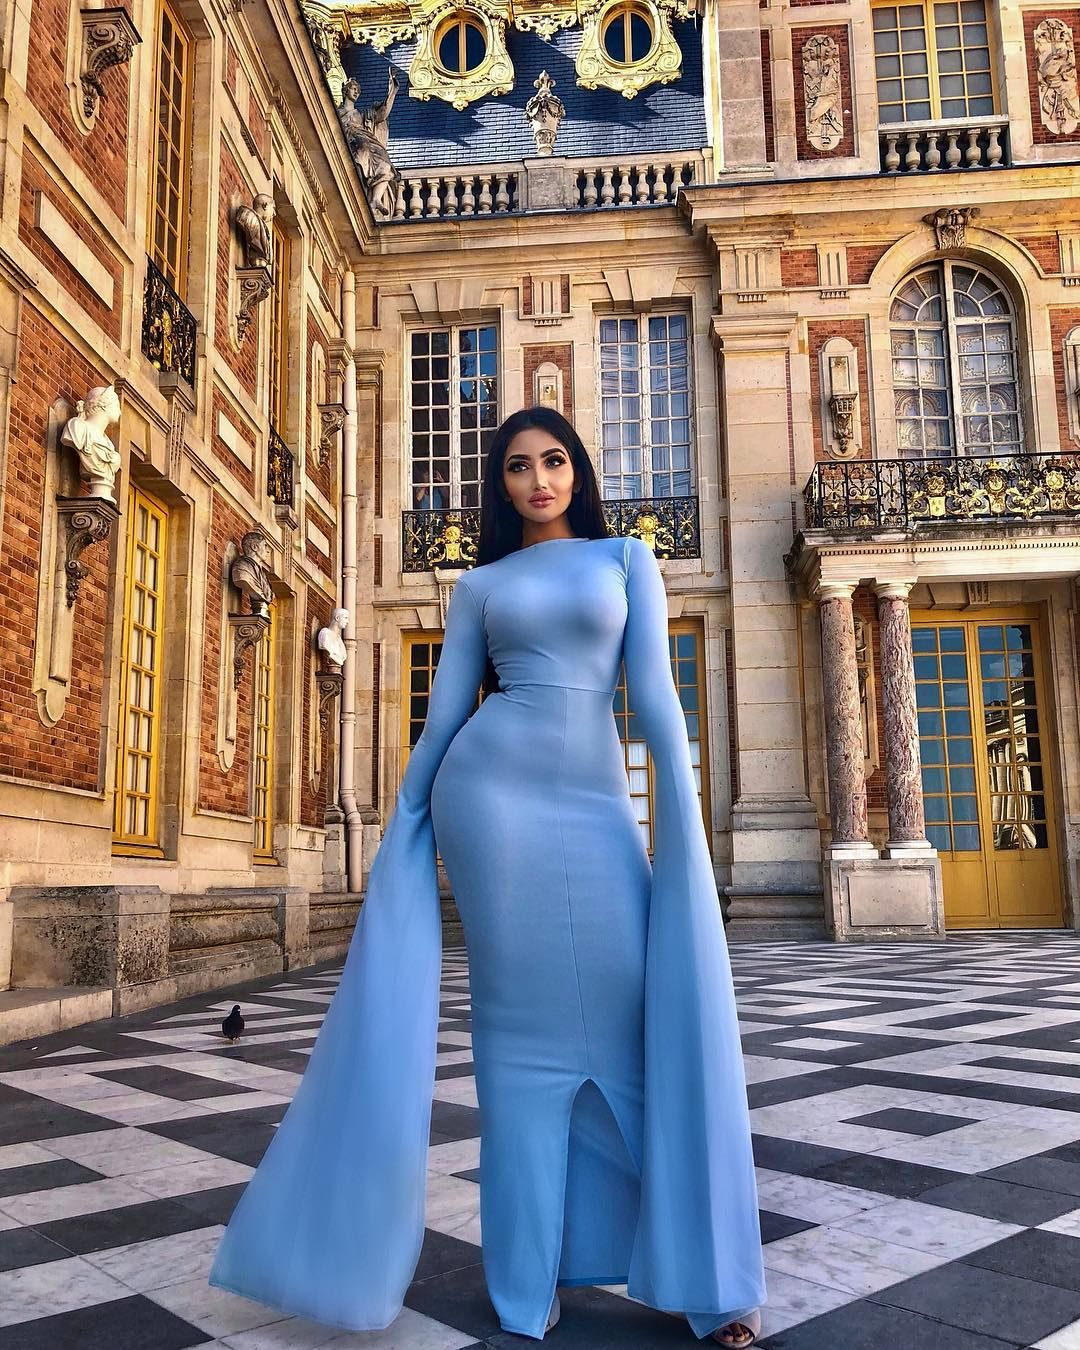 Walking into my ex's funeral like. 👸🏻 Fi Funeral outfit